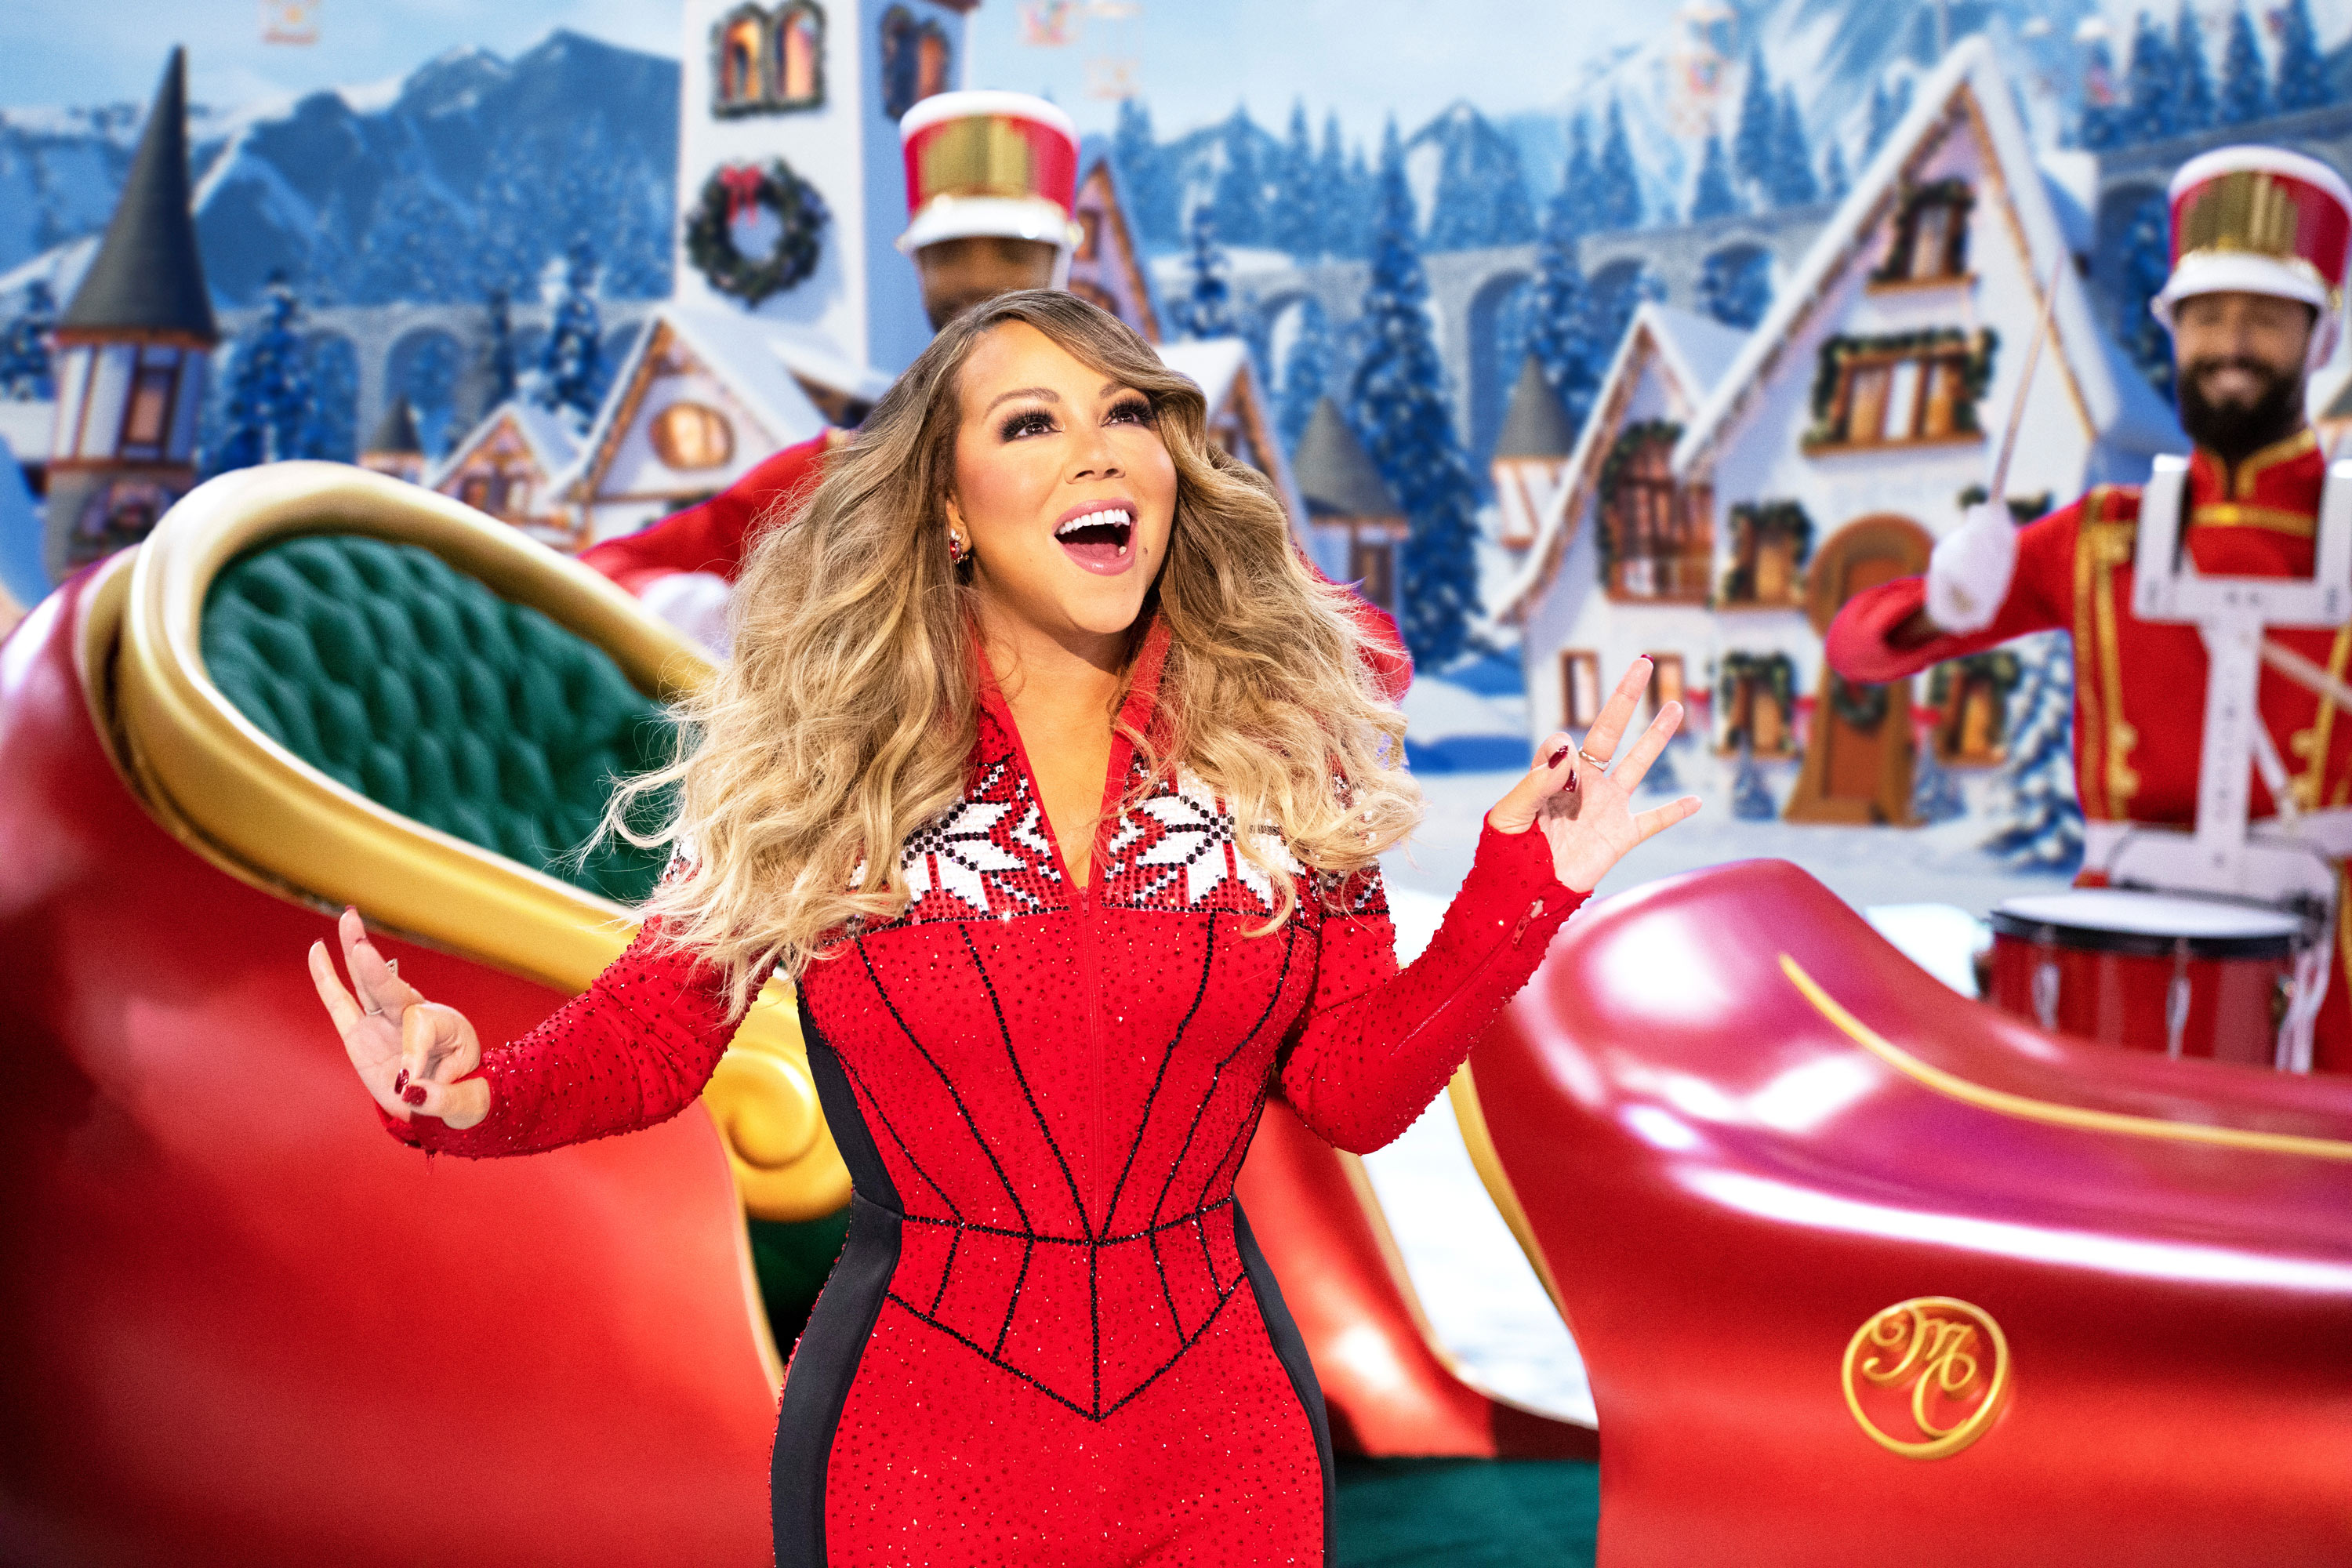 Mariah Carey's Christmas special is truly the greatest gift of all